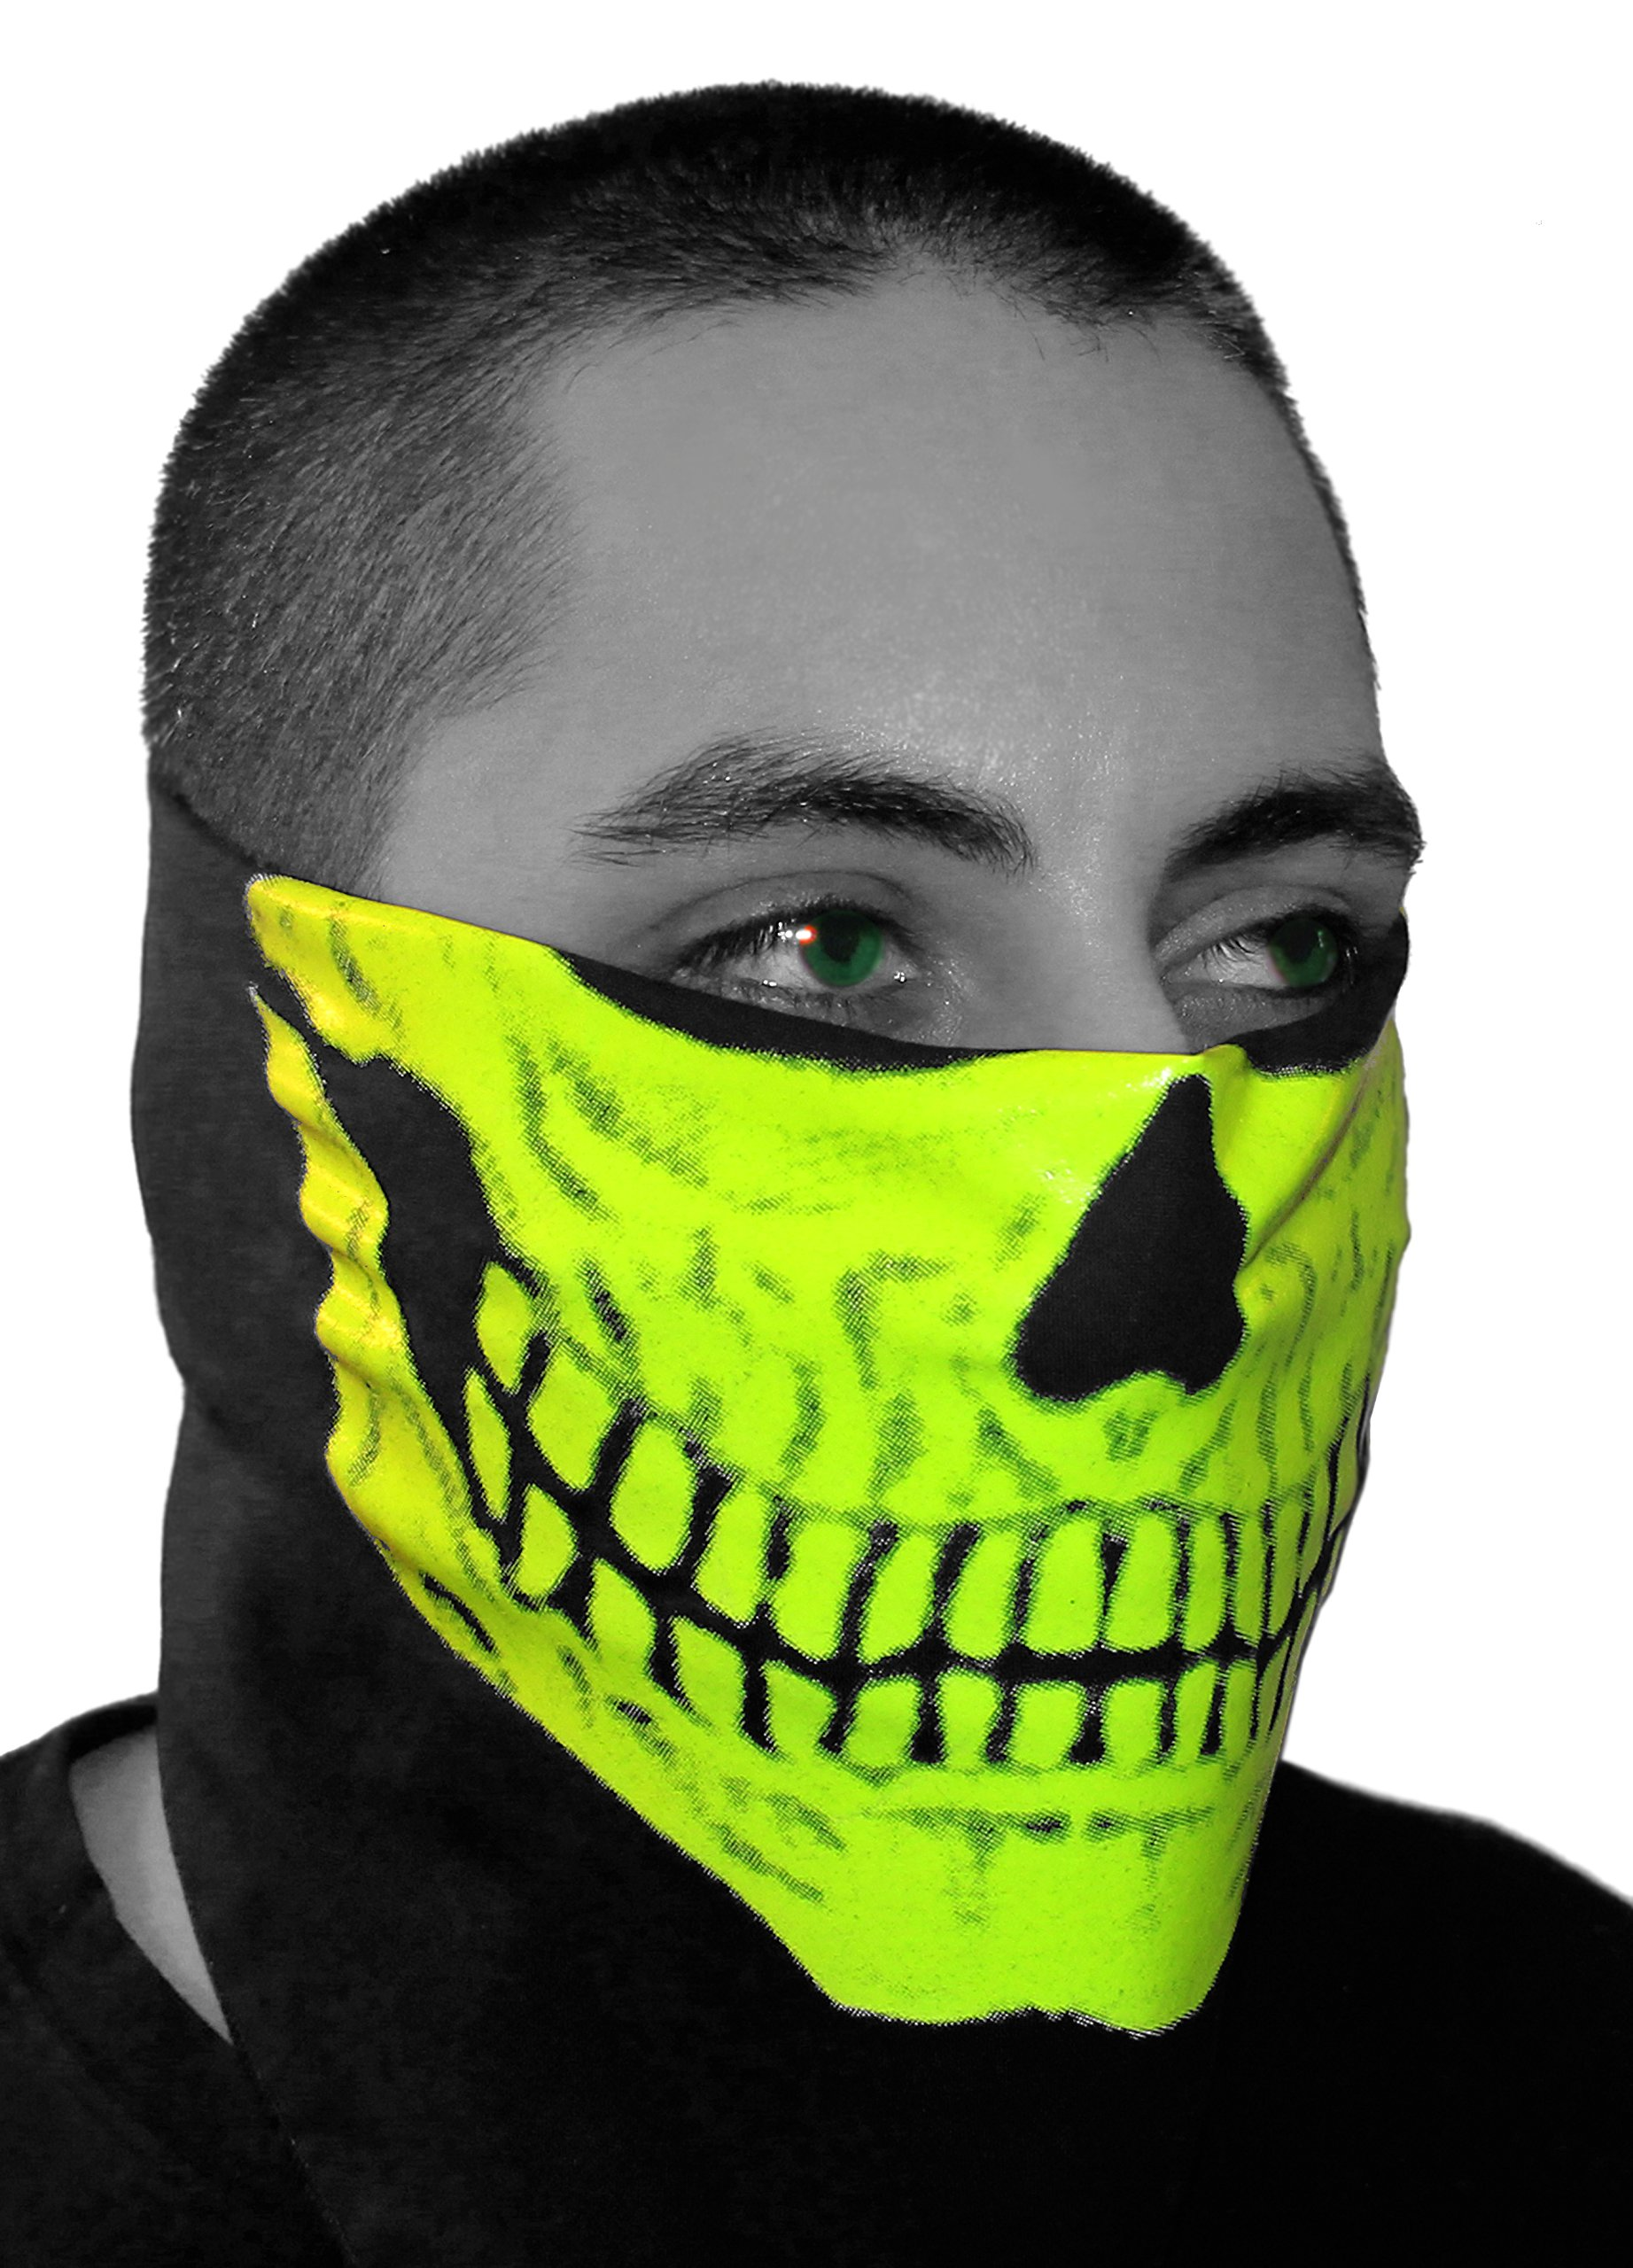 SFYNX Skull Face' EDM Face Mask - Glows in The Dark - Blacklight Reactive Rave Bandana - Yellow